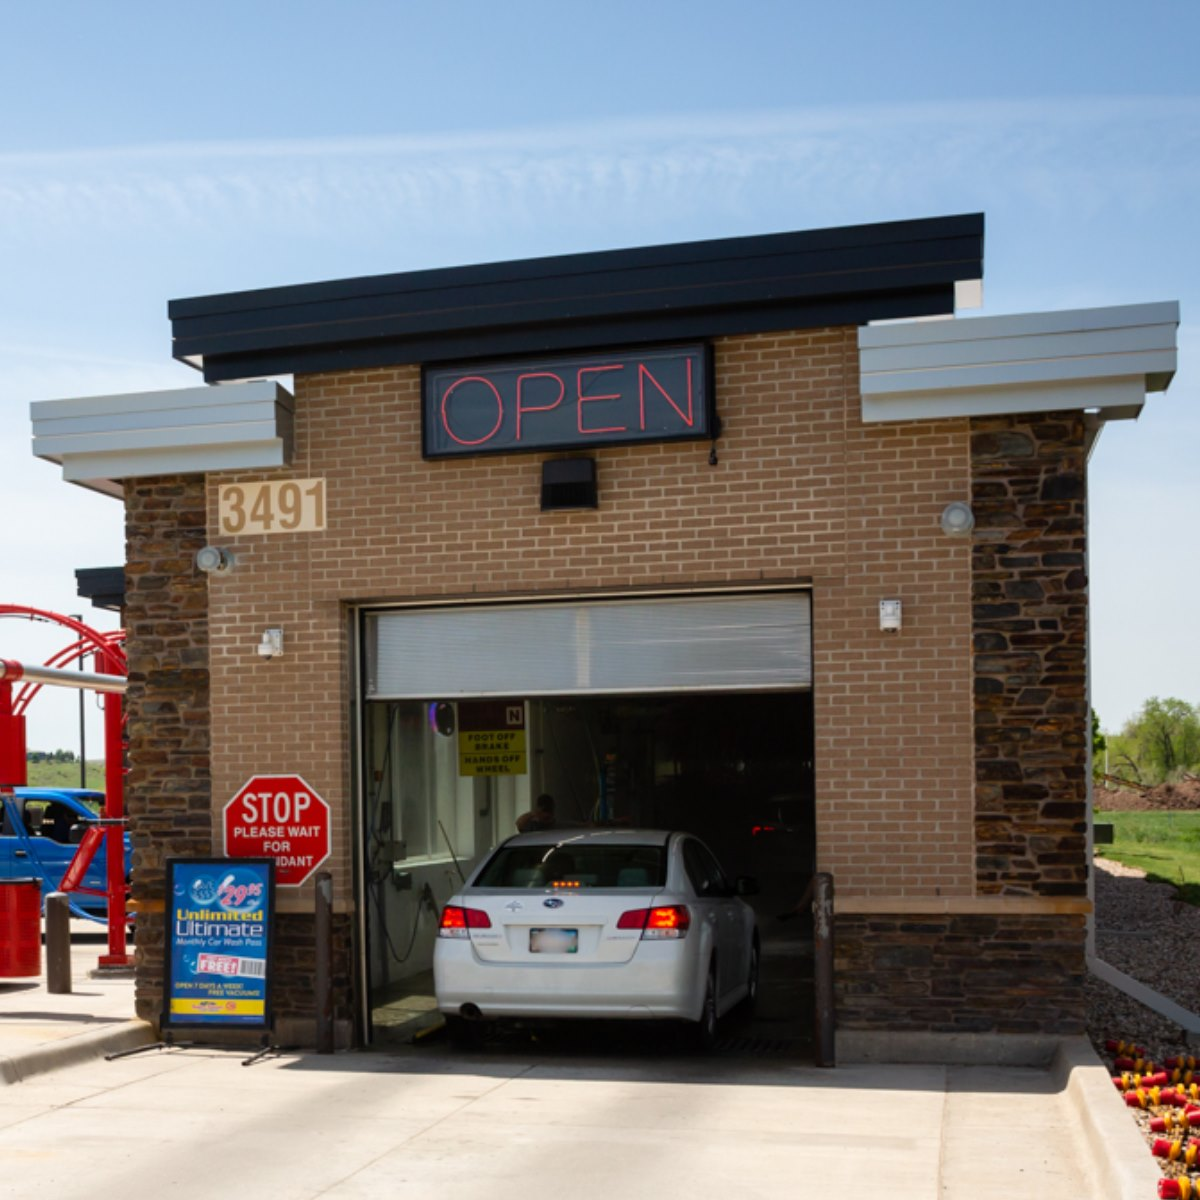 Kick The Year Off Right With a Monthly Car Wash Pass To Any Common Cents Super Tunnel Car Wash Location! A $32.95 Value For Only $9.97!